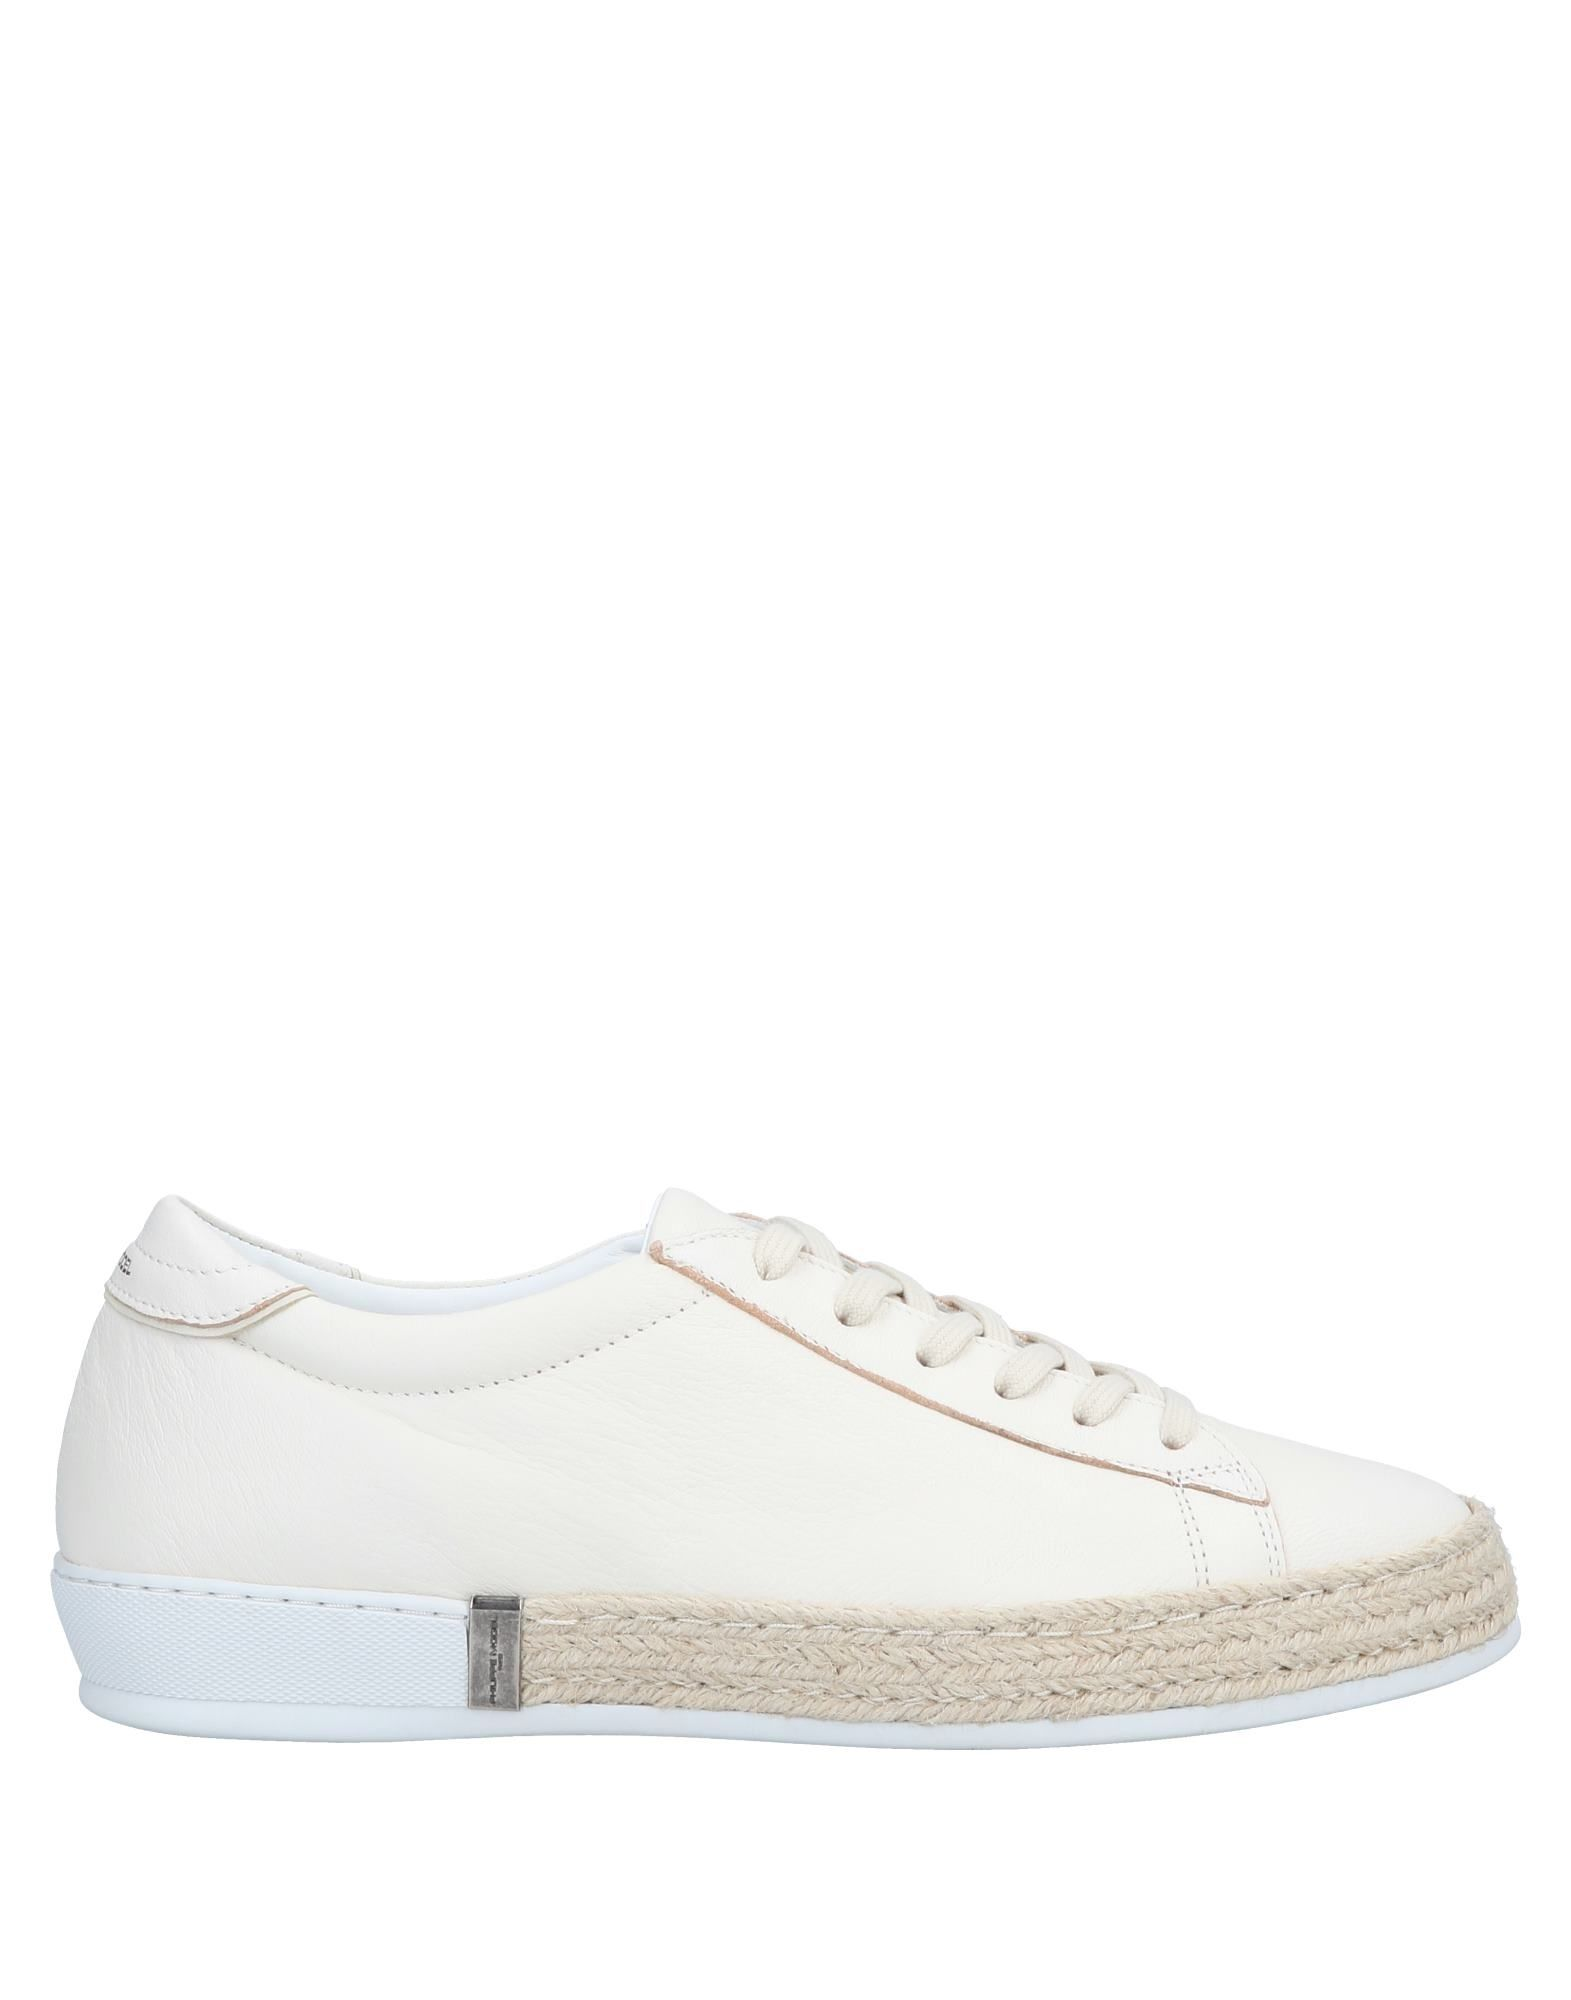 Philippe Model Sneakers - Men Men Men Philippe Model Sneakers online on  Australia - 11564904LF ab2308